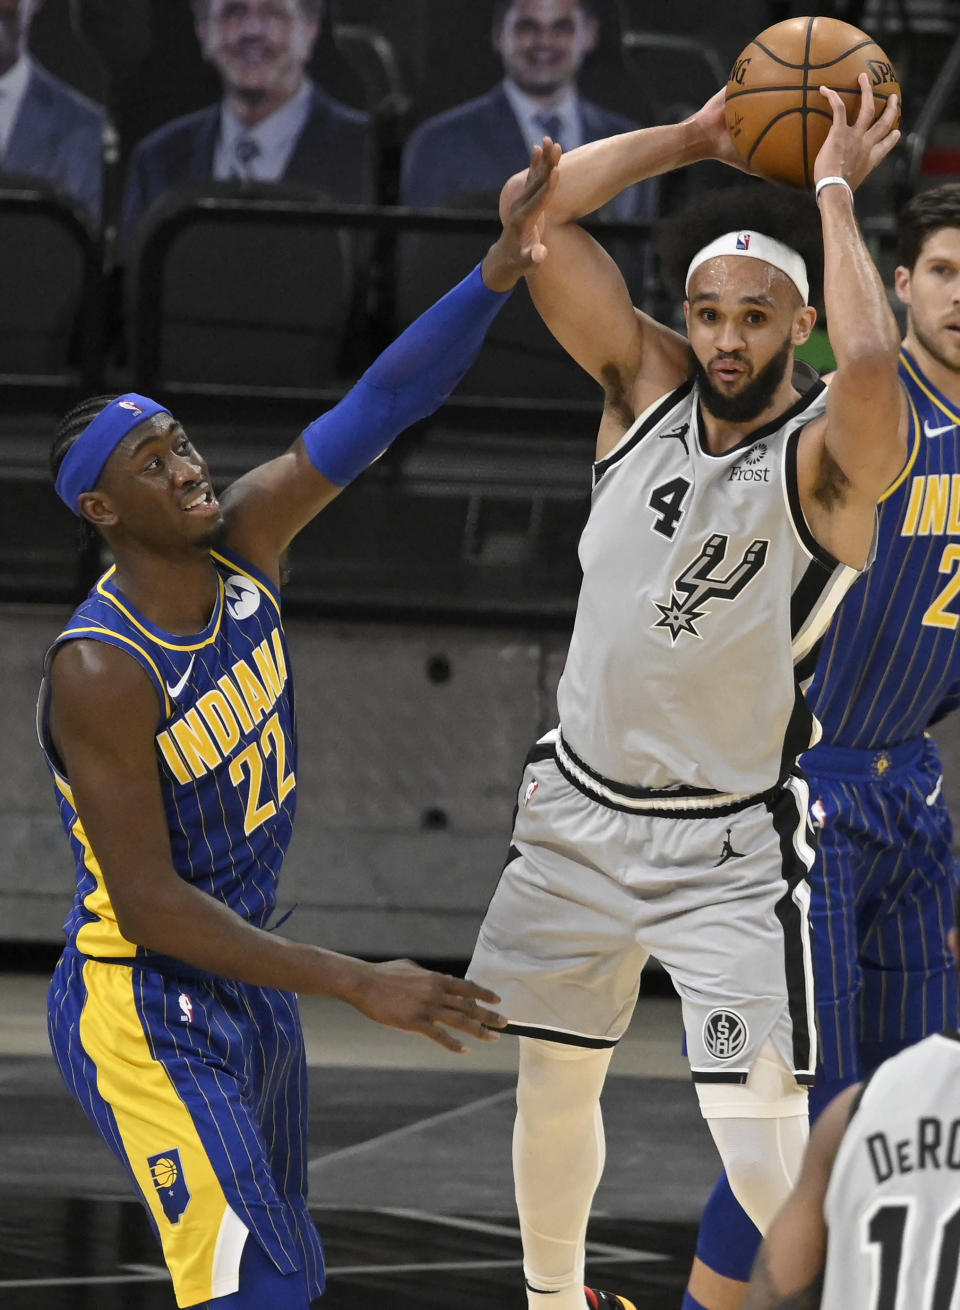 San Antonio Spurs' Derrick White (4) looks to pass as he is defended by Indiana Pacers' Caris LeVert during the second half of an NBA basketball game on Saturday, April 3, 2021, in San Antonio. (AP Photo/Darren Abate)